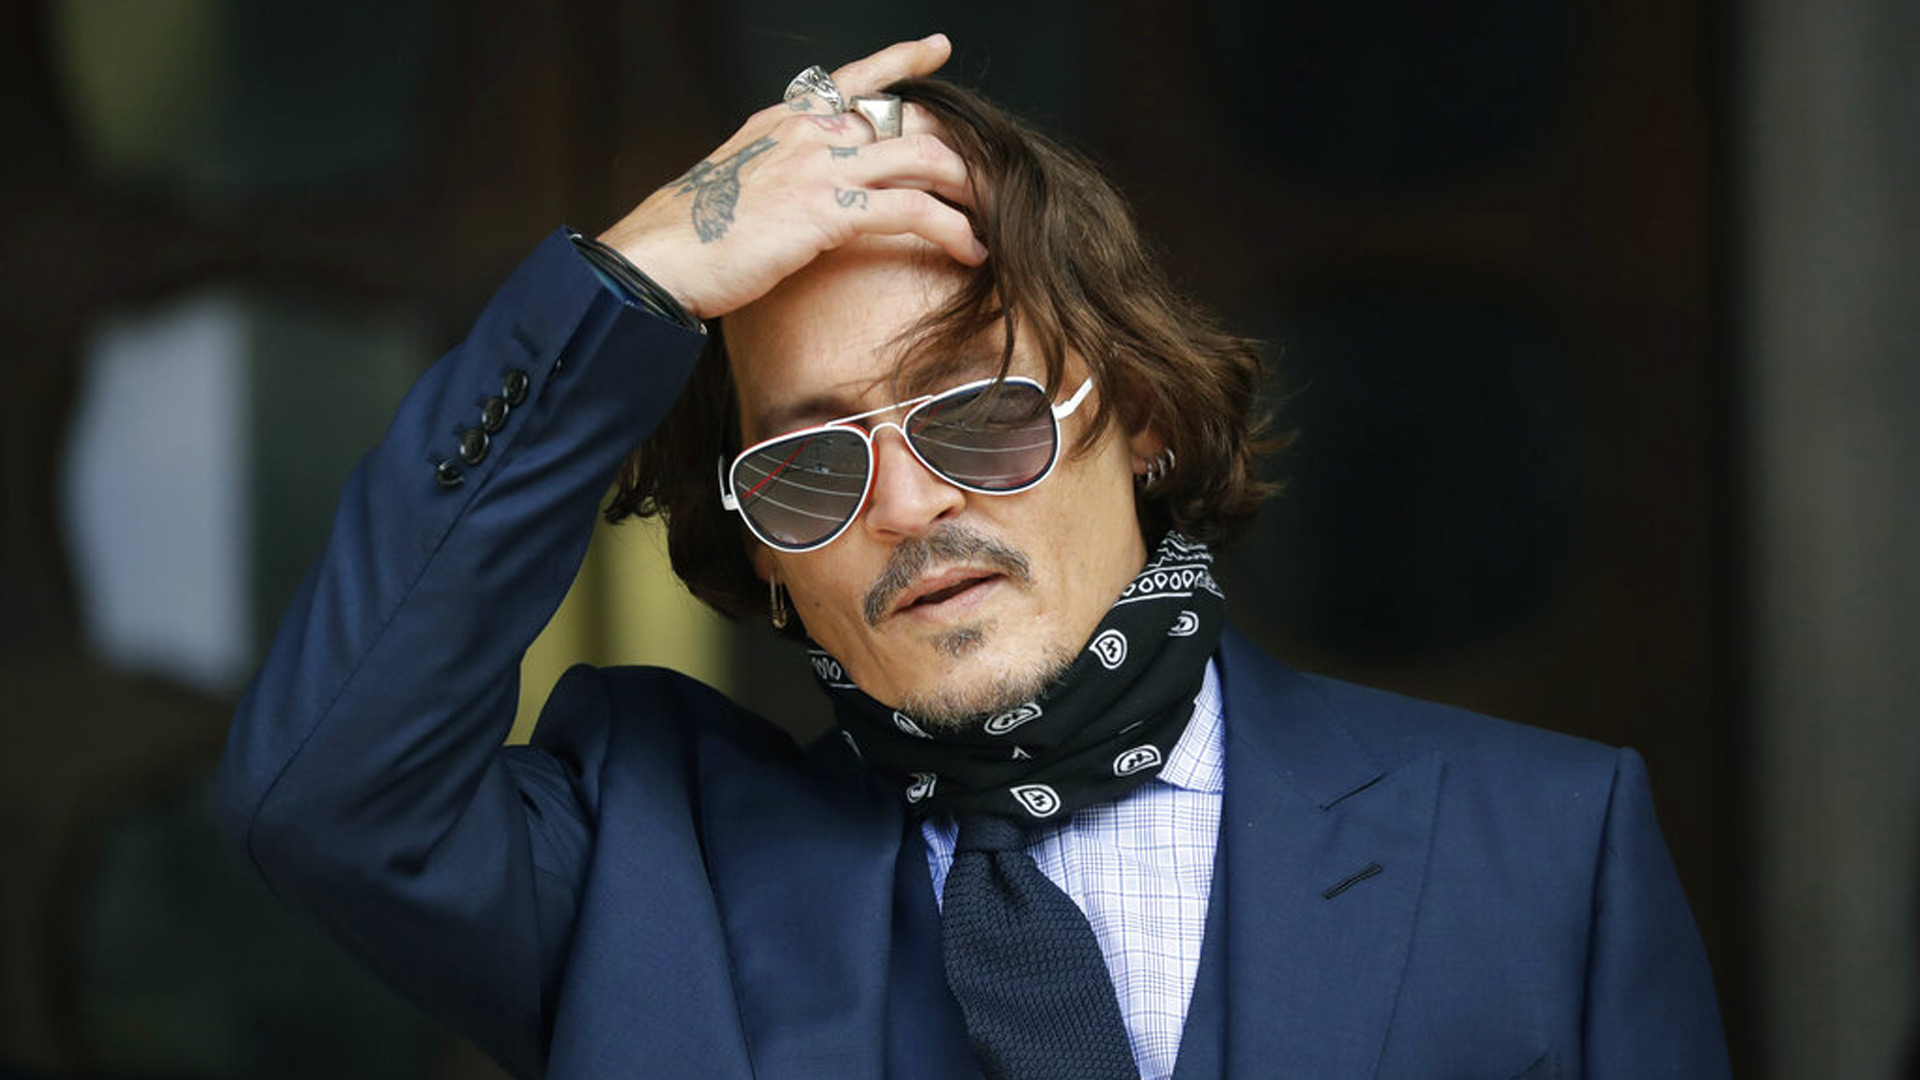 In this Tuesday, July 14, 2020 file photo, American actor Johnny Depp gestures to the media as he arrives at the High Court in London. (AP Photo/Matt Dunham, file)